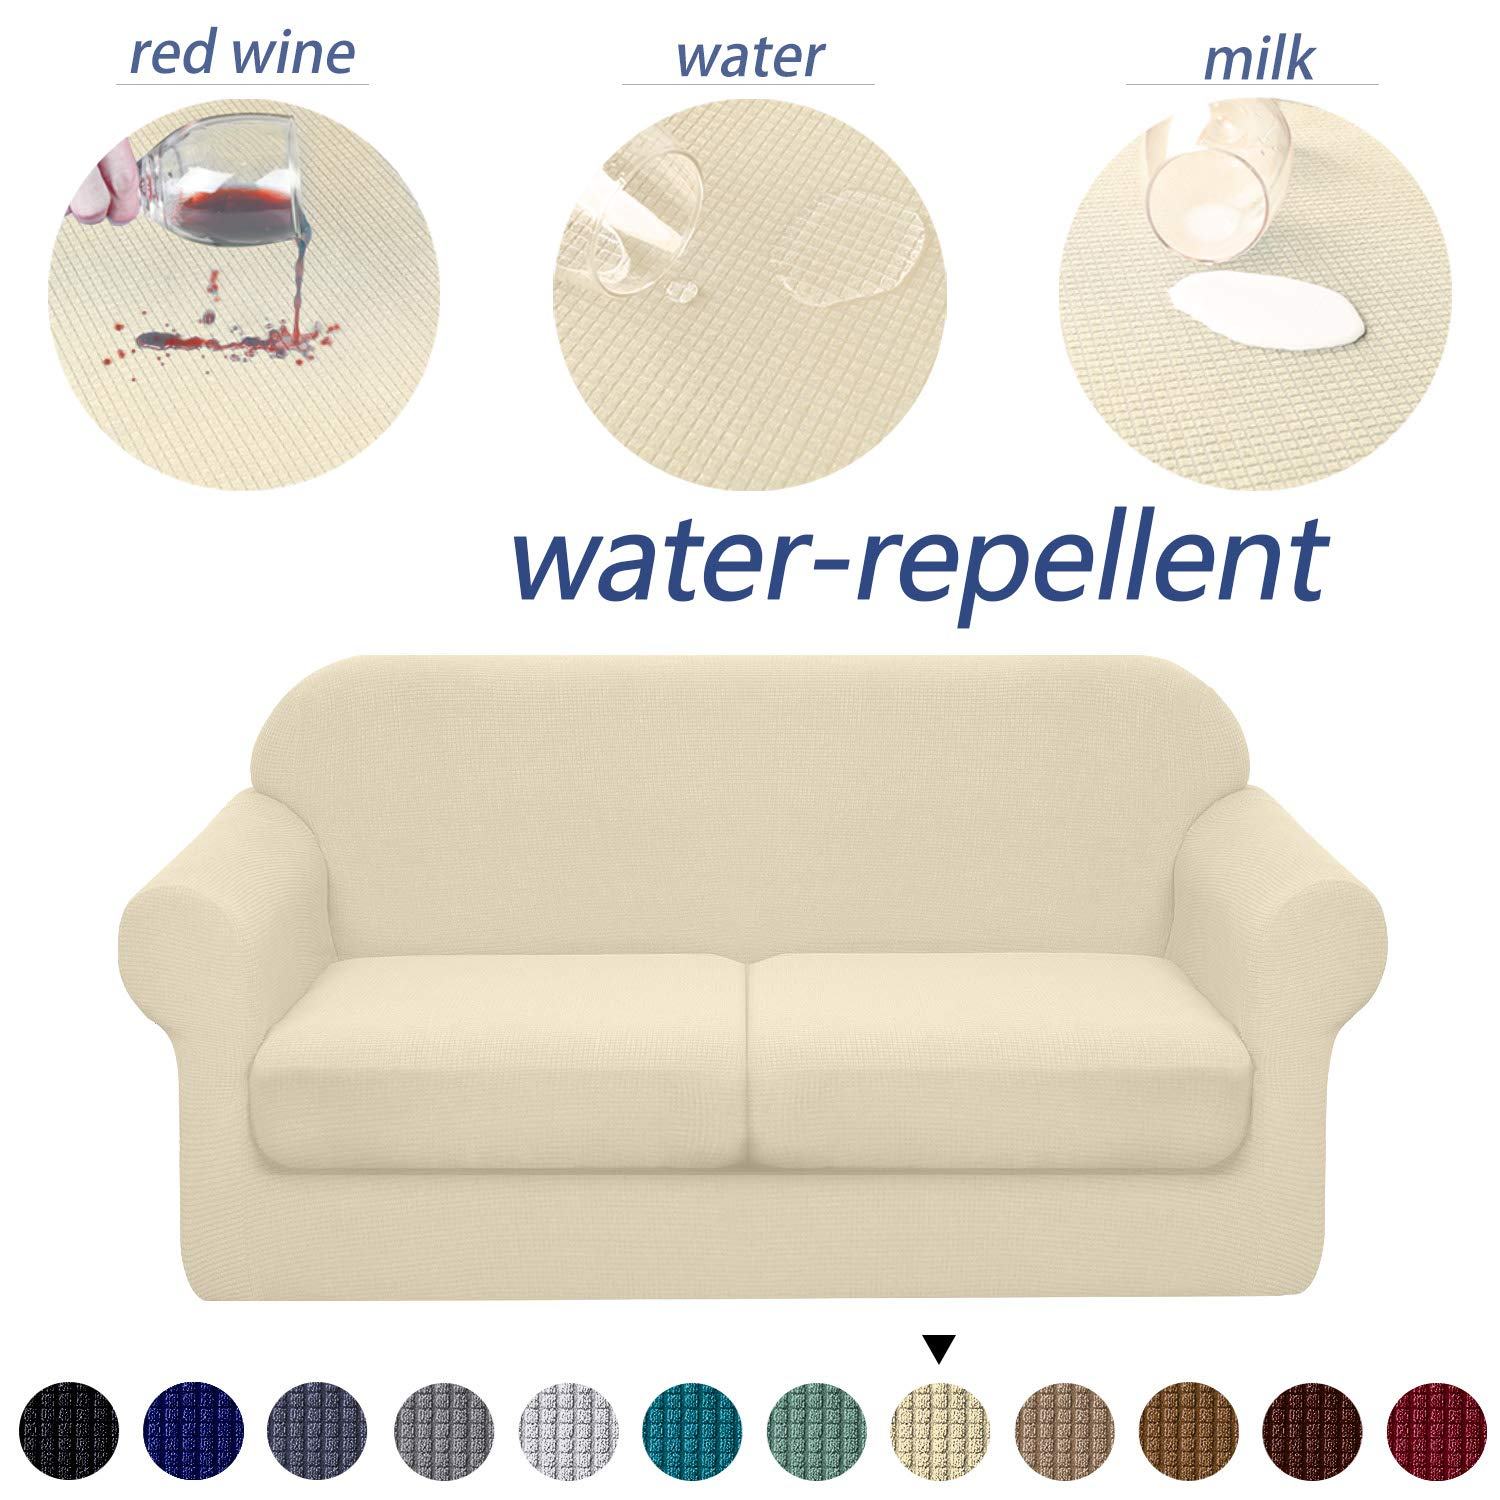 Granbest 3 Piece Premium Water-Repellent Couch Slipcover for 2 Cushion Couch Super Soft Loveseat Sofa Covers High Stretch Separate Cushion Couch Covers for Dogs Furniture Cover (Medium, Beige)